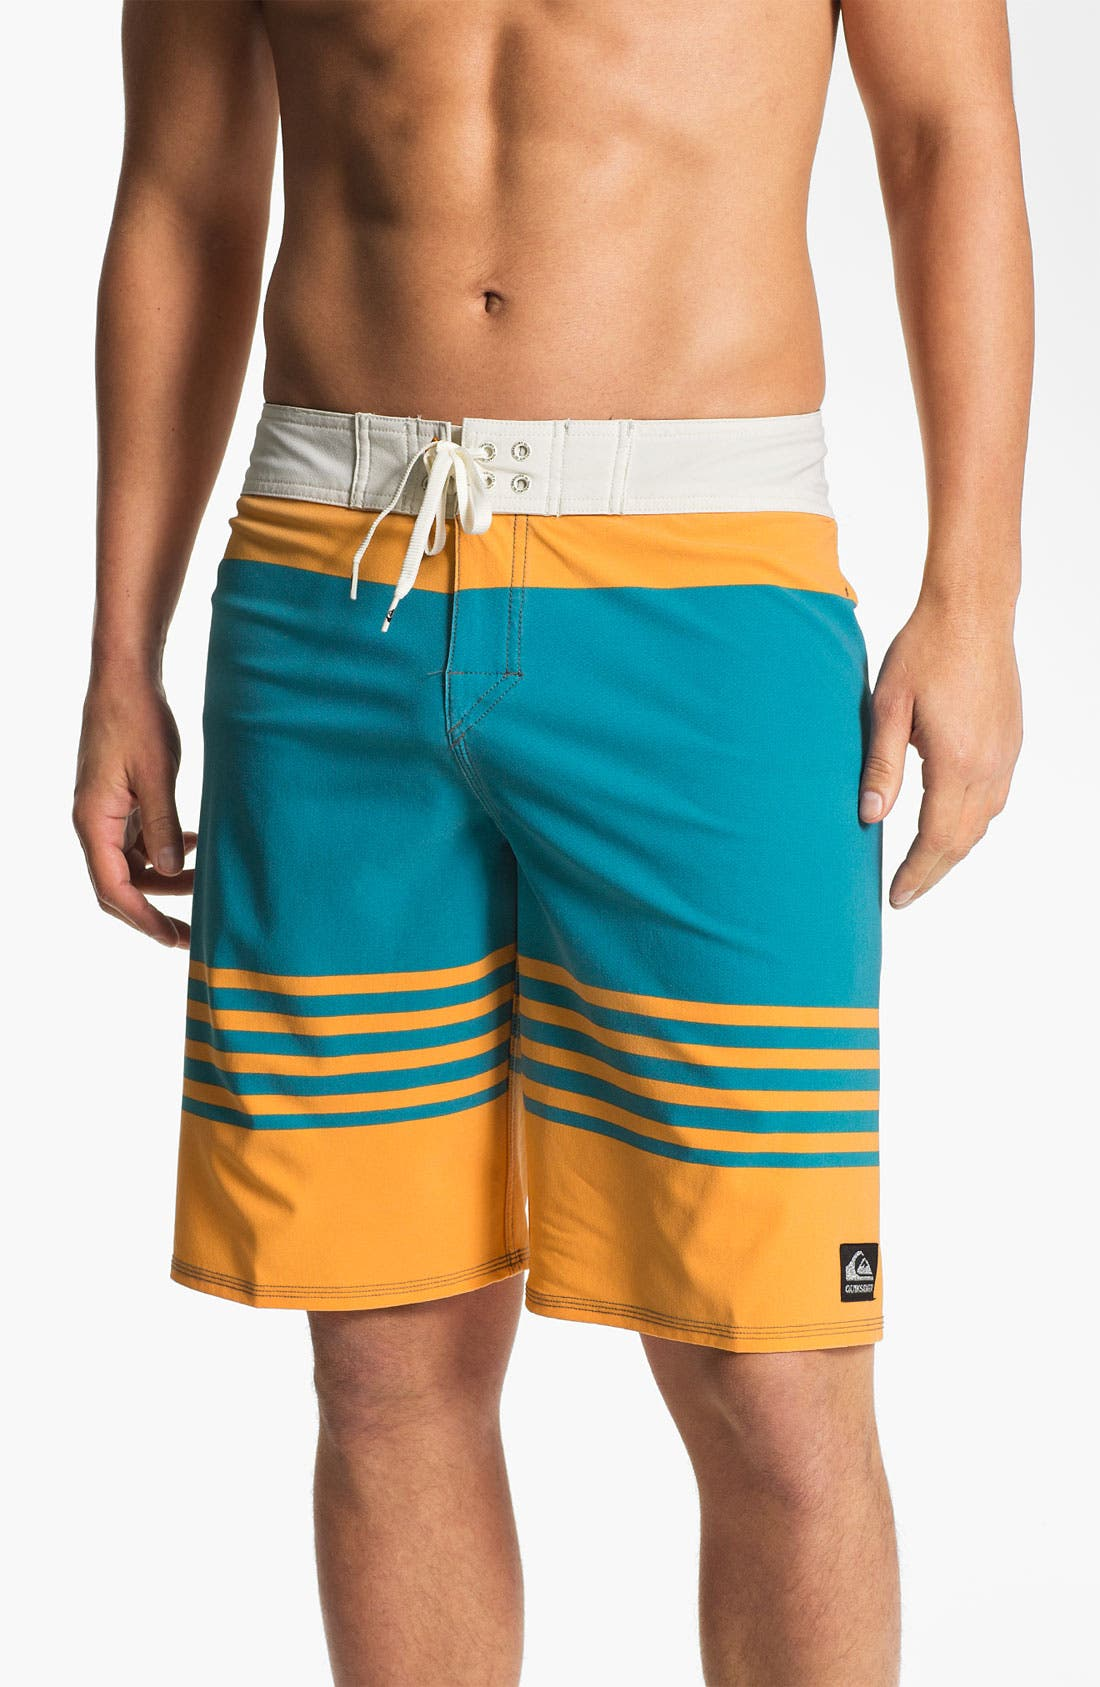 Alternate Image 1 Selected - Quiksilver 'Cypher Reynolds Revolt' Board Shorts